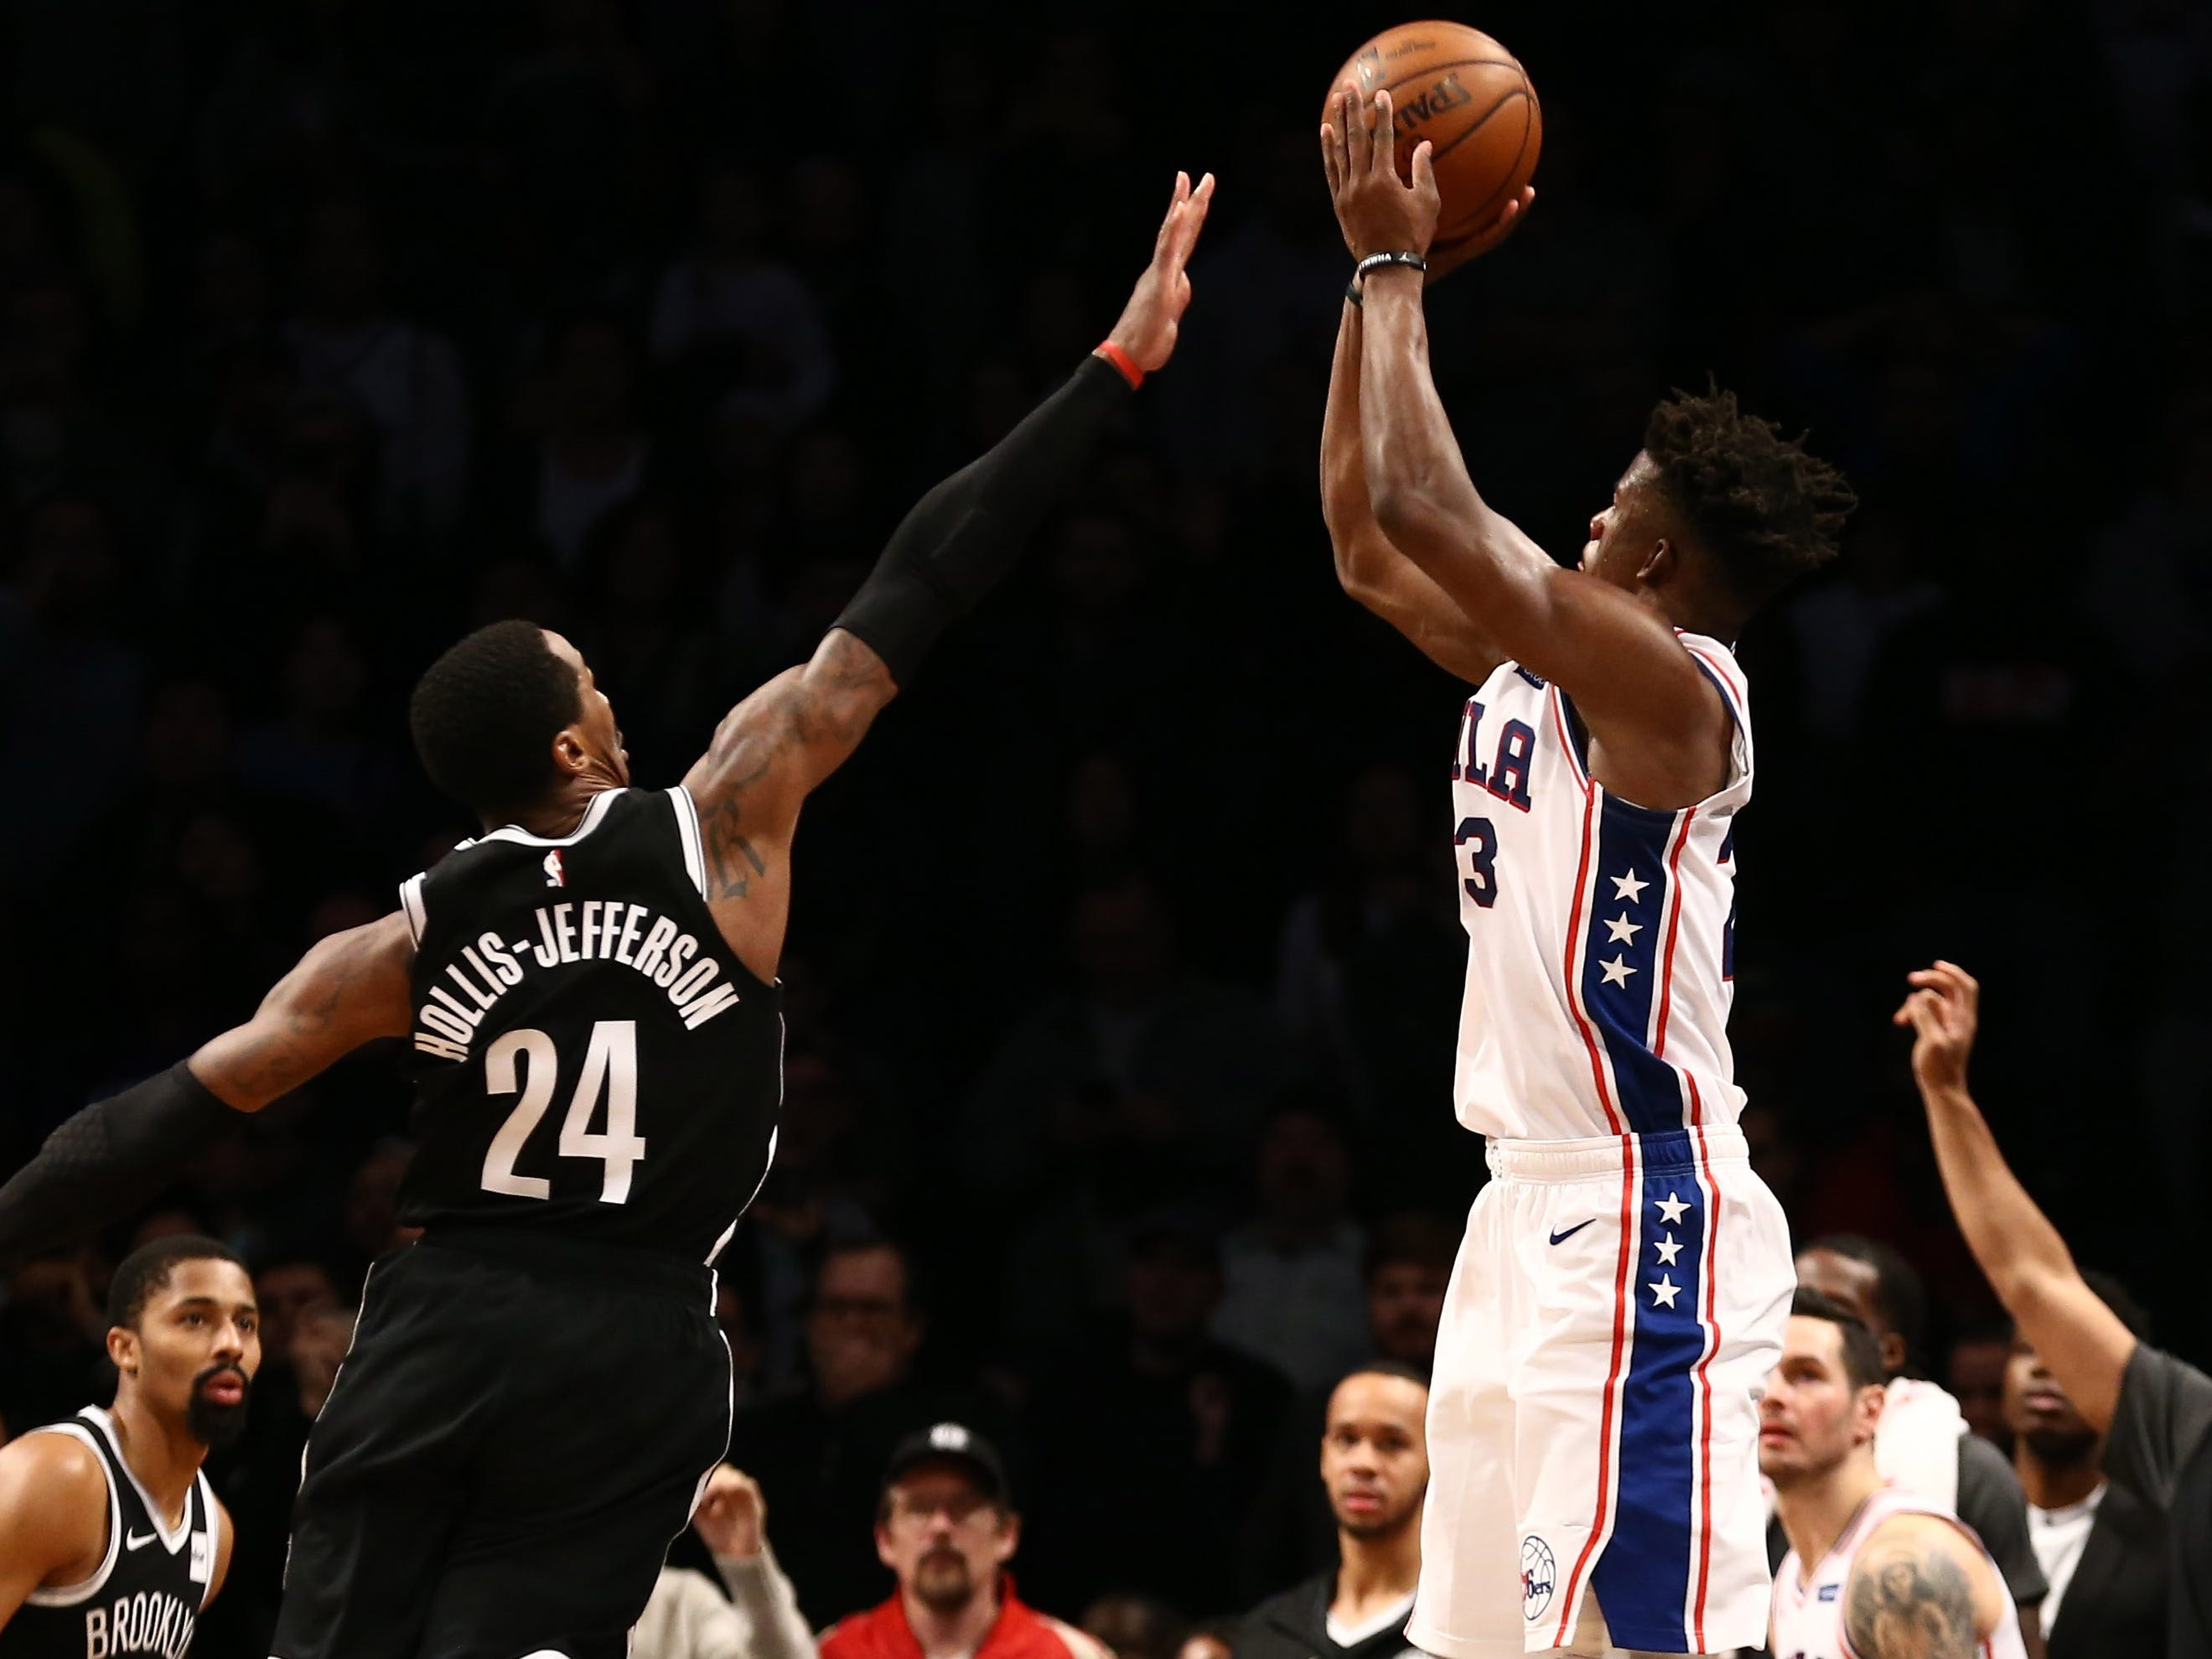 Nov. 25: Sixers forward Jimmy Butler (23) rises up a fires the game-winning 3-pointer over Nets defender Rondae Hollis-Jefferson (24) during the closing seconds in Brooklyn.